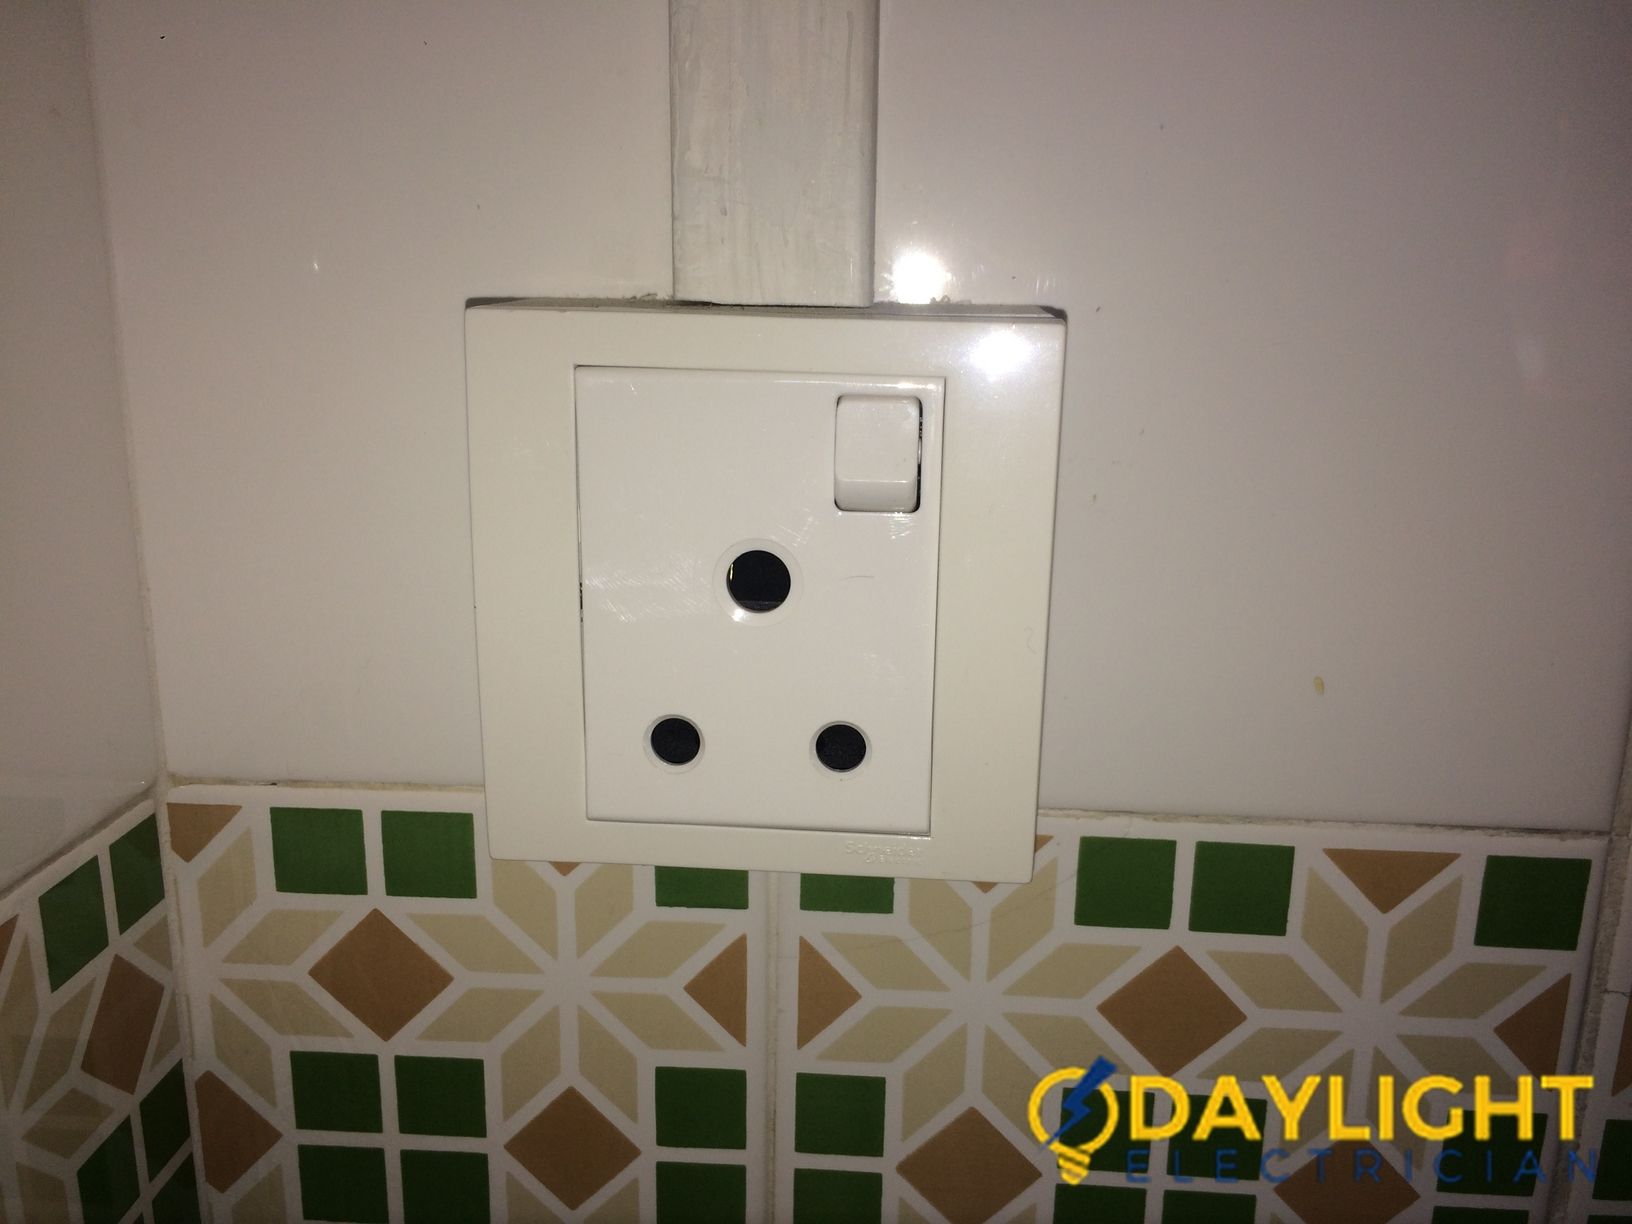 Change-Power-Switch-Daylight-Electrician-Singapore-HDB-Hougang-1_wm